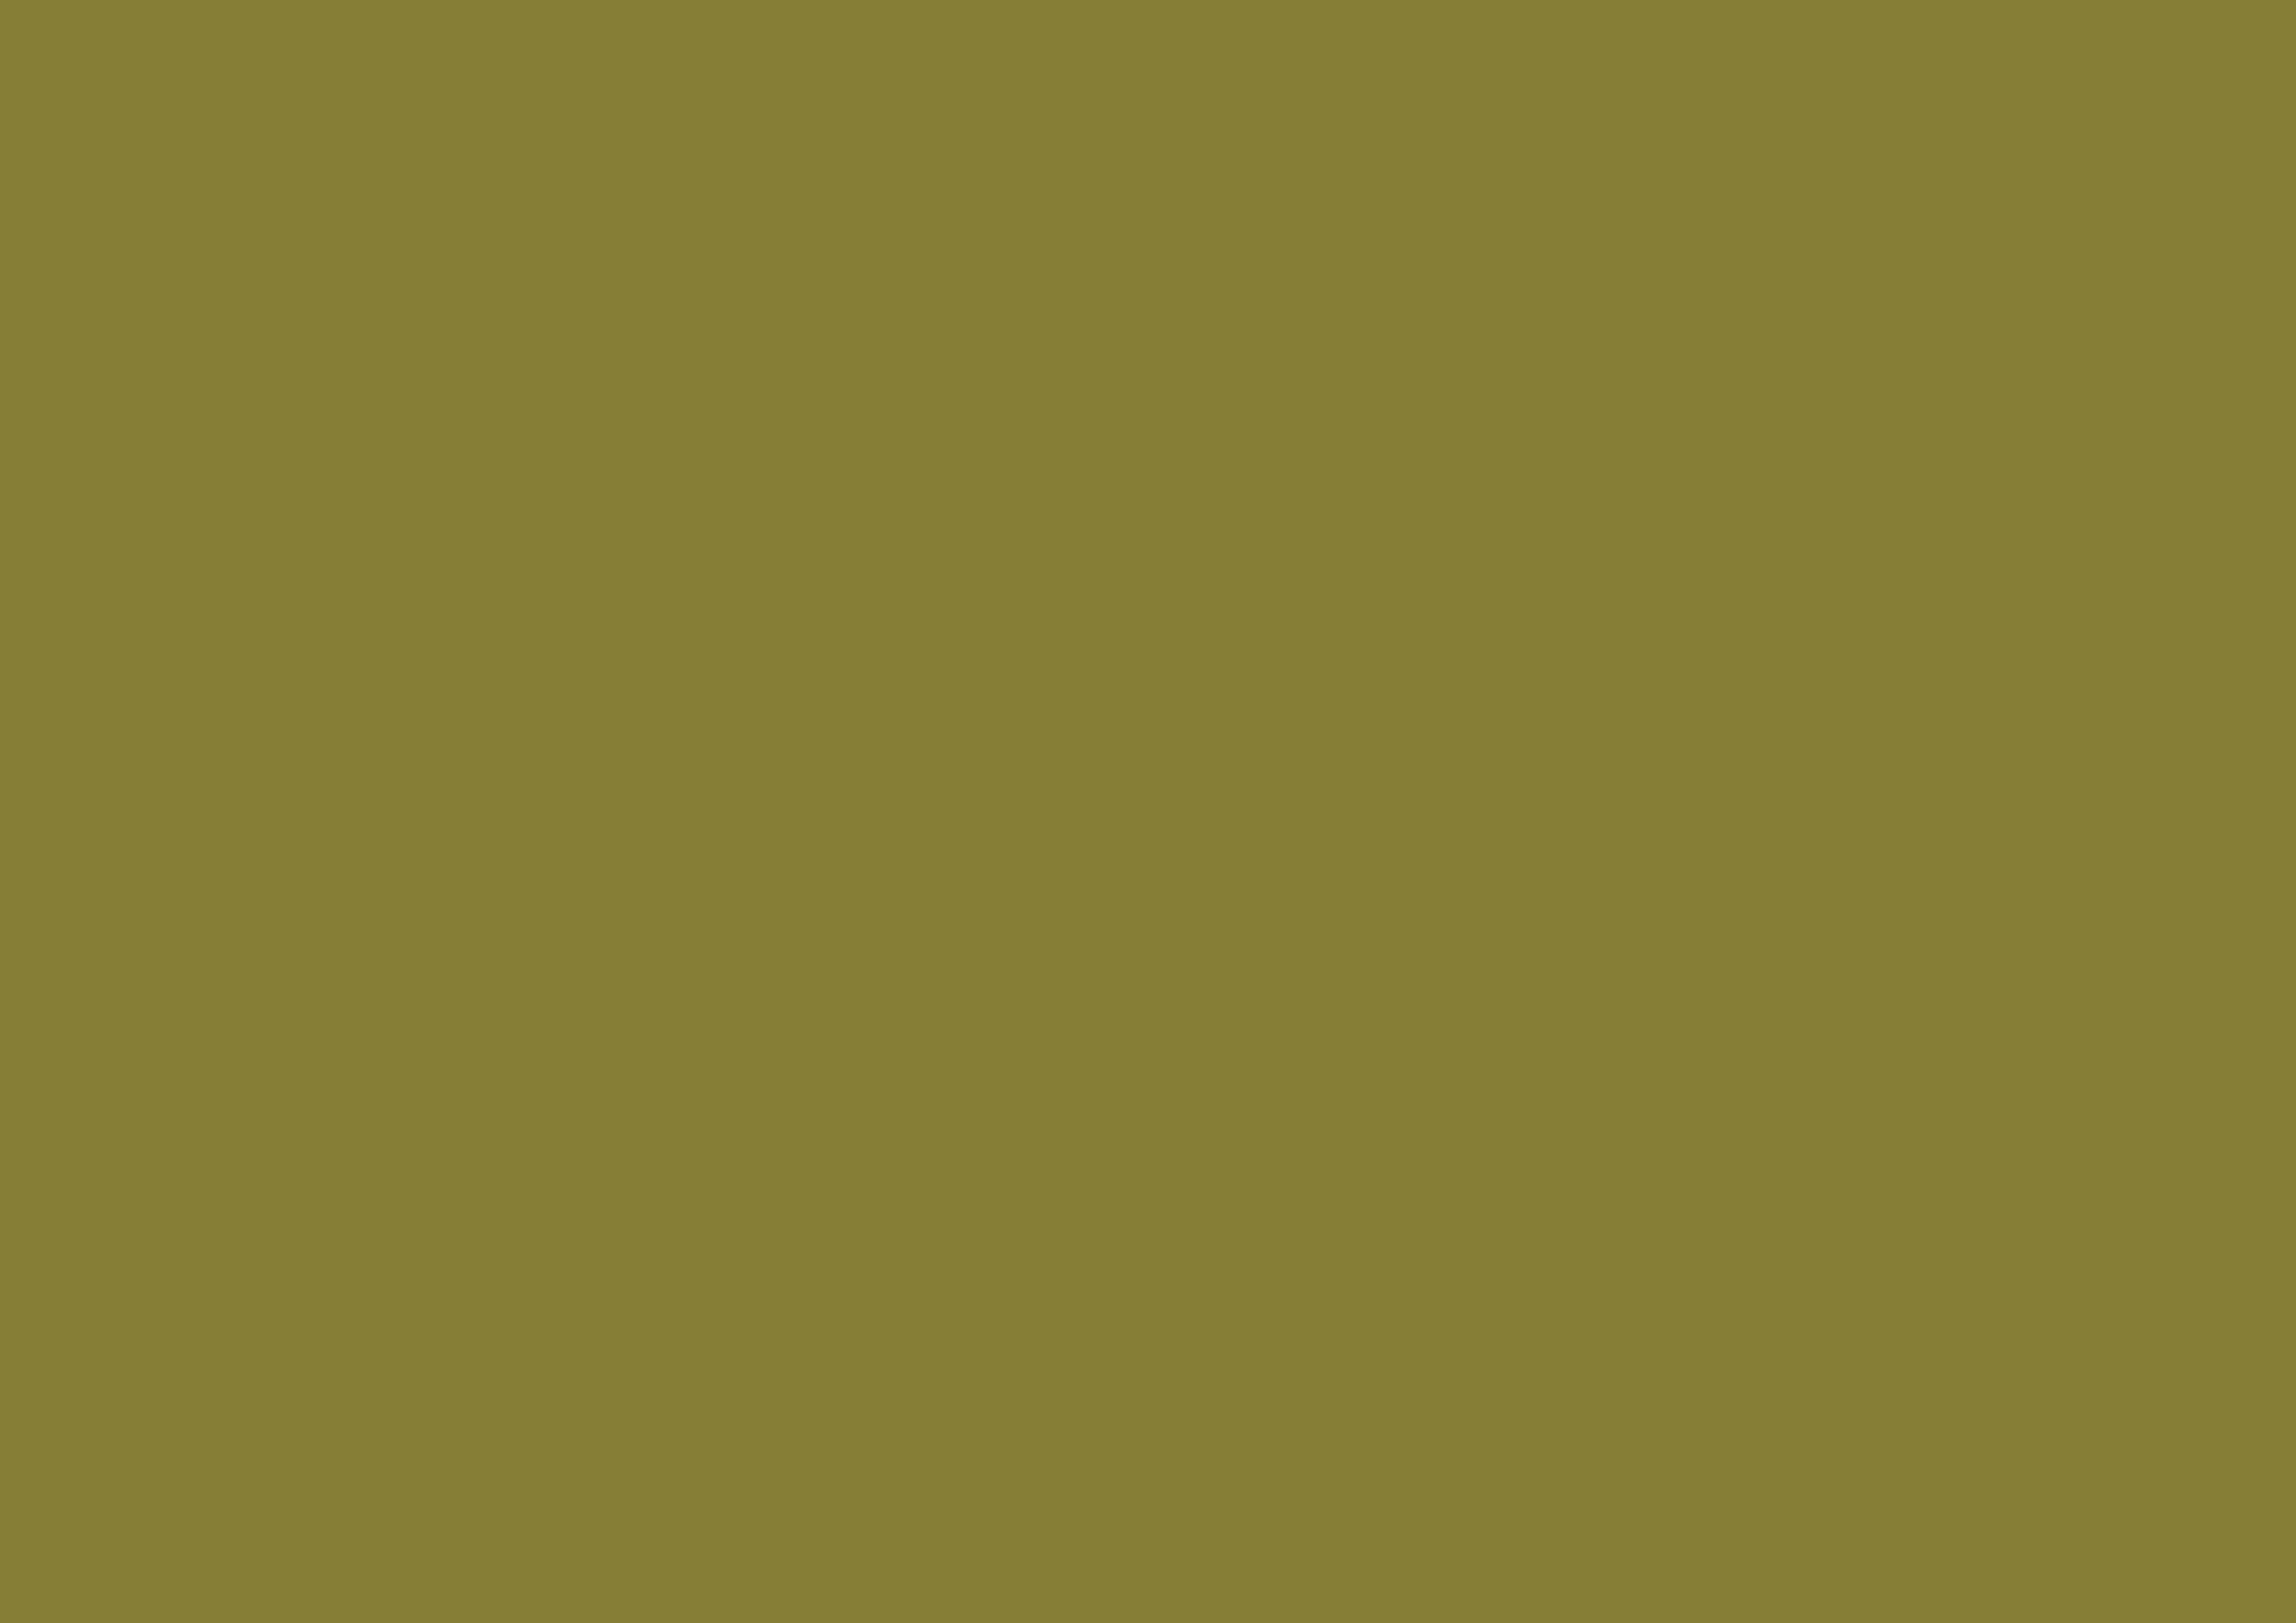 3508x2480 Old Moss Green Solid Color Background